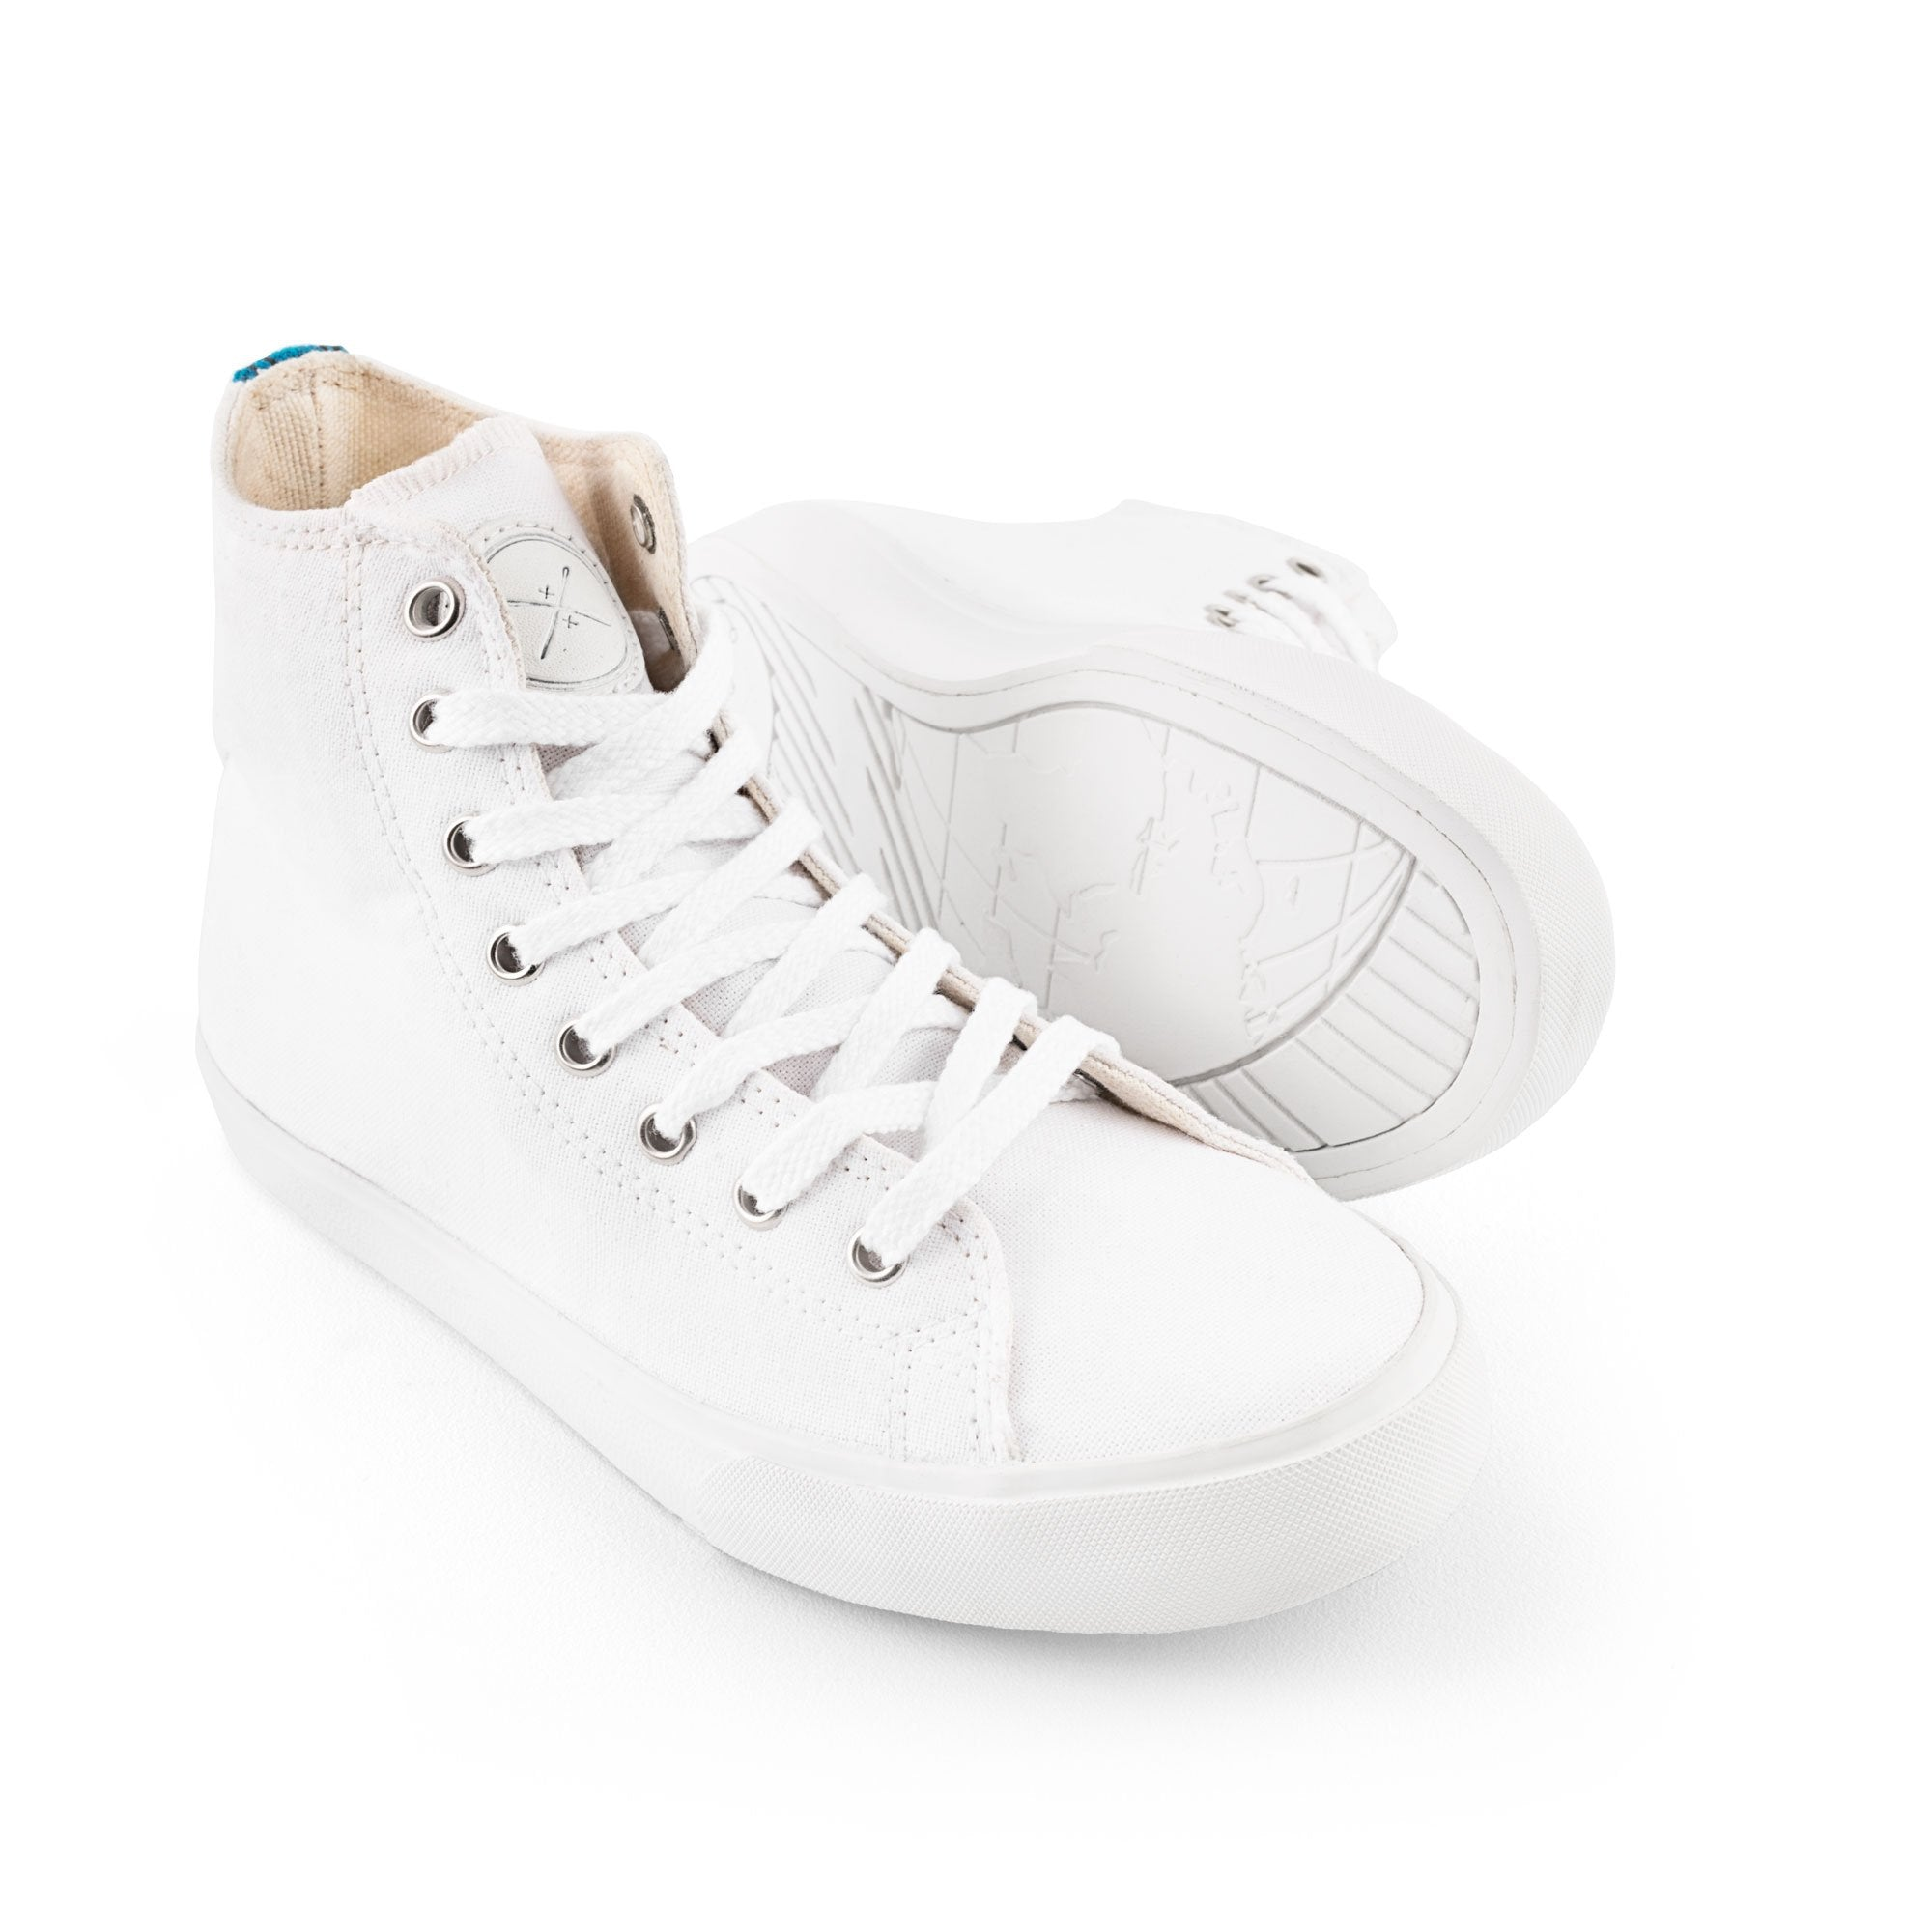 Blank Canvas High Top (SHOE ART CONTEST)